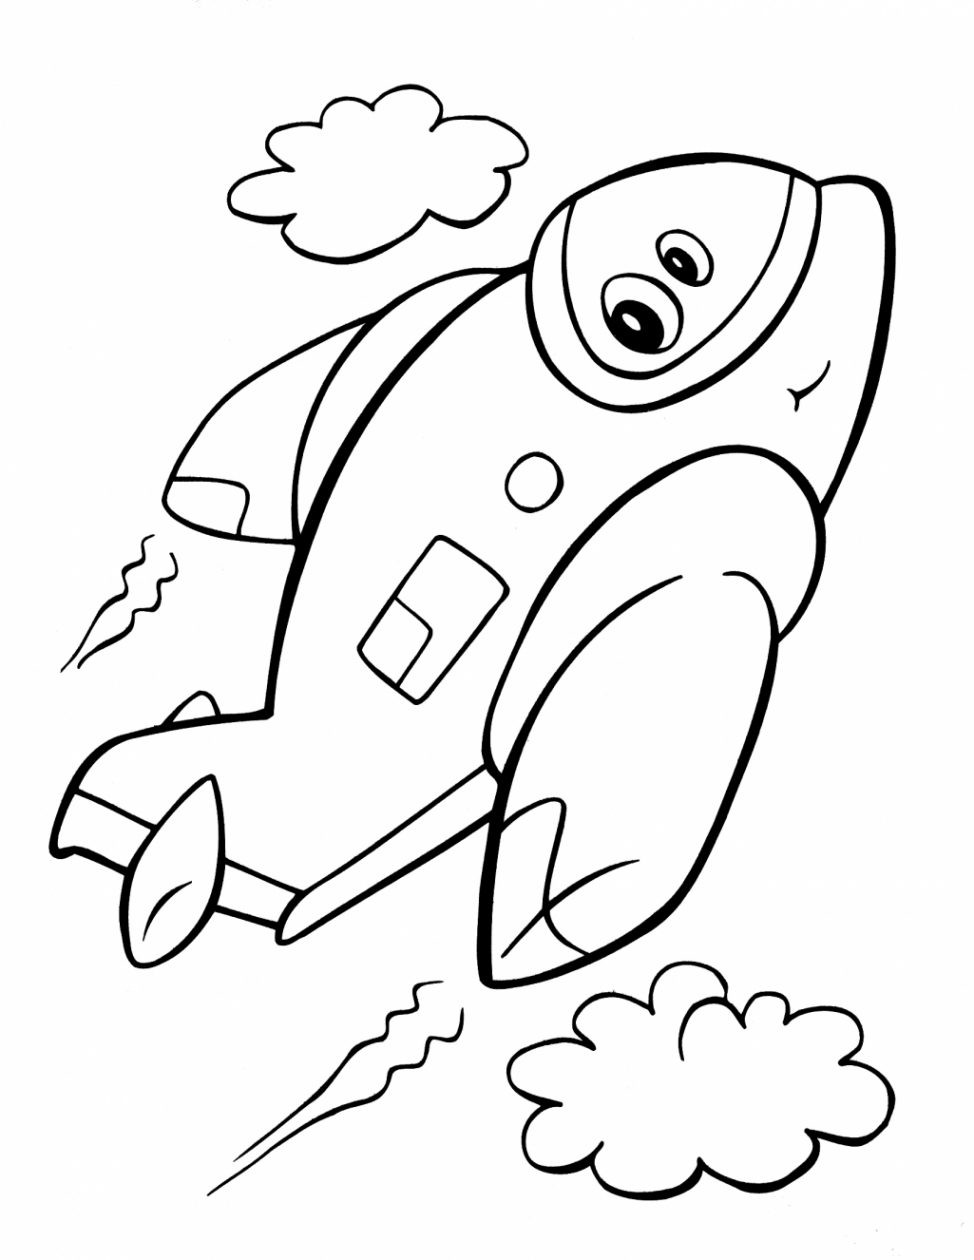 974x1260 Make Your Own Coloring Pages Free Book Arilitv Com Endearing